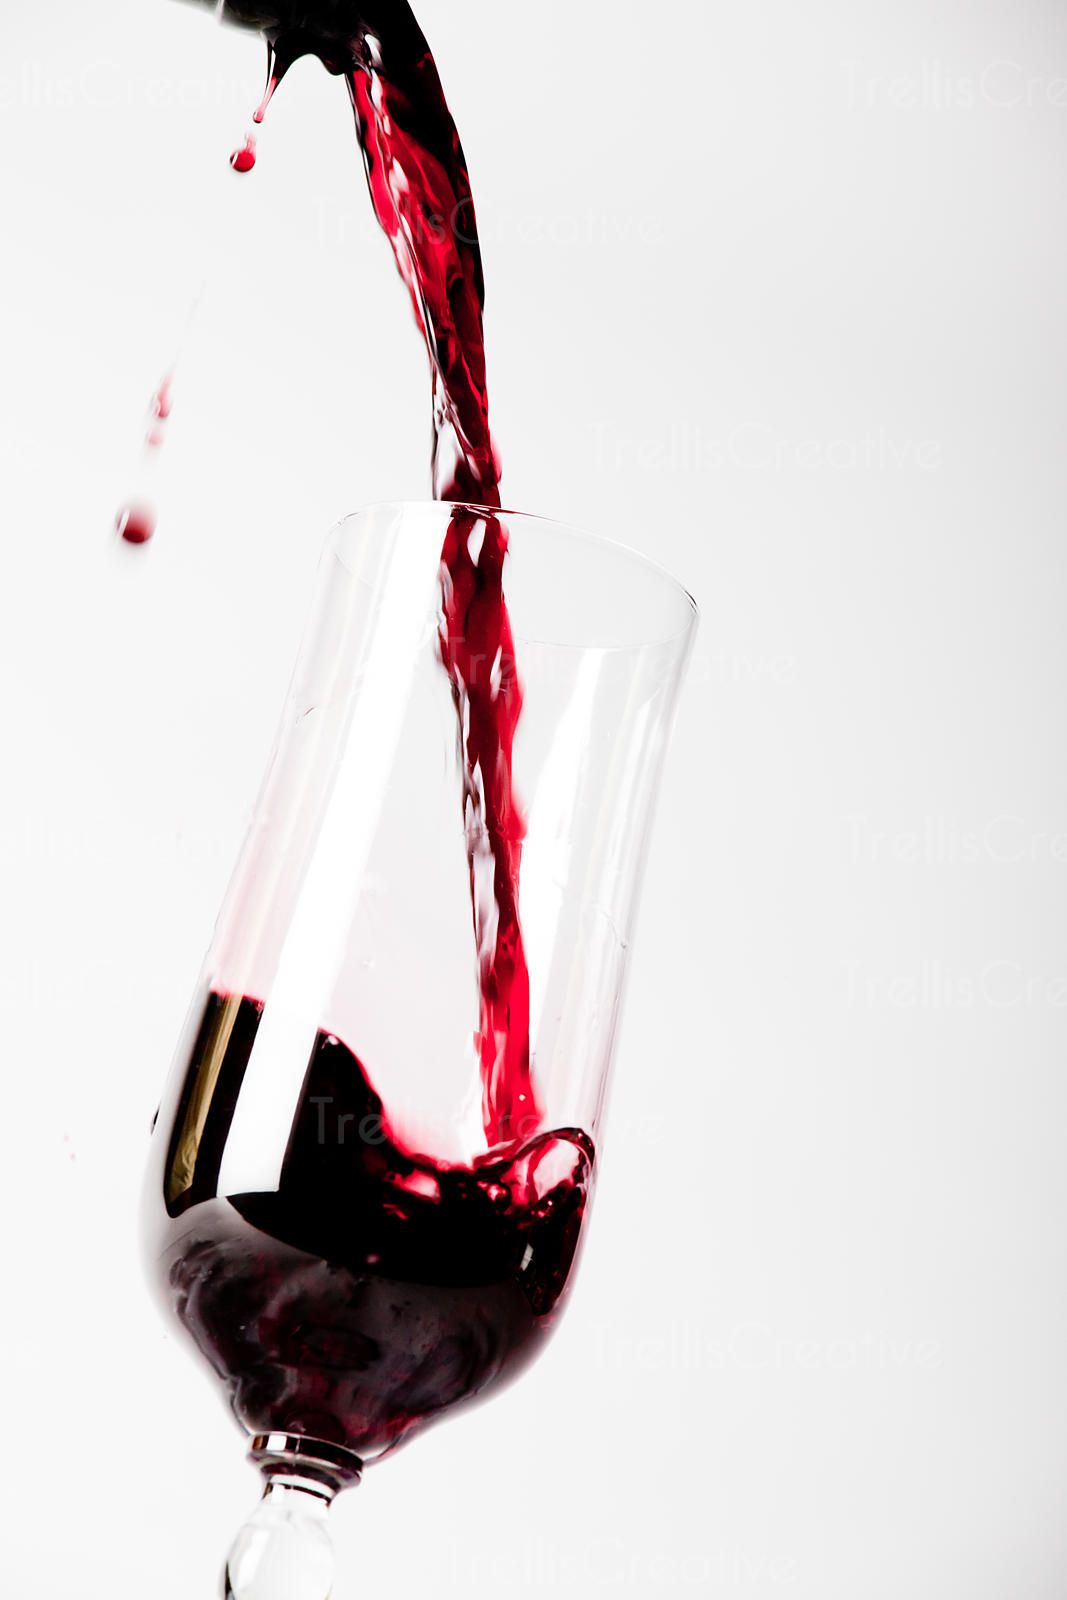 Spilling red wine into a glass causing a splash